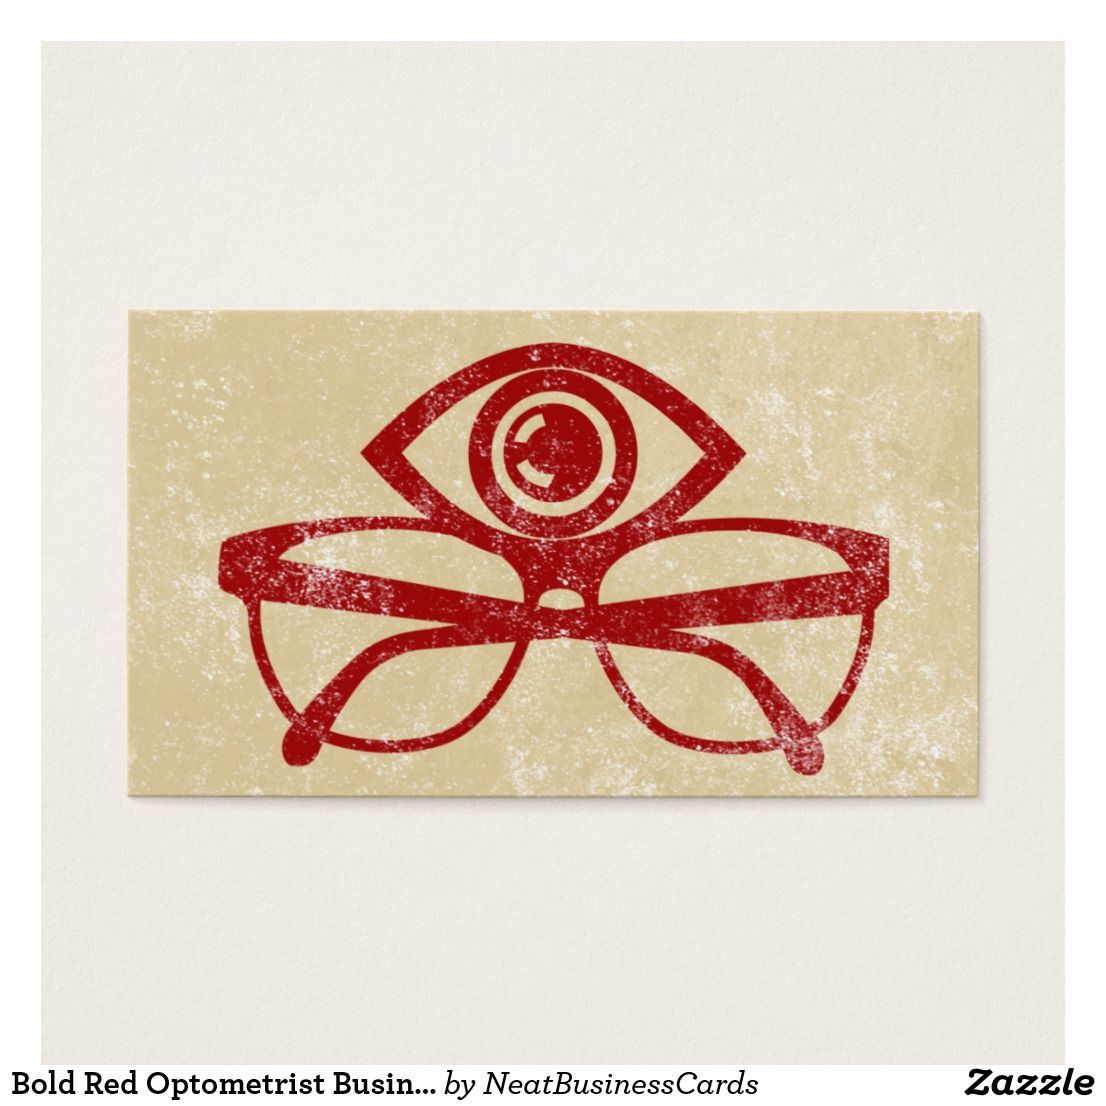 Bold red optometrist business cards pinterest bold red optometrist business cards custom check out more business card designs at httpzazzlebusinesscreations or at httpzazzle reheart Image collections